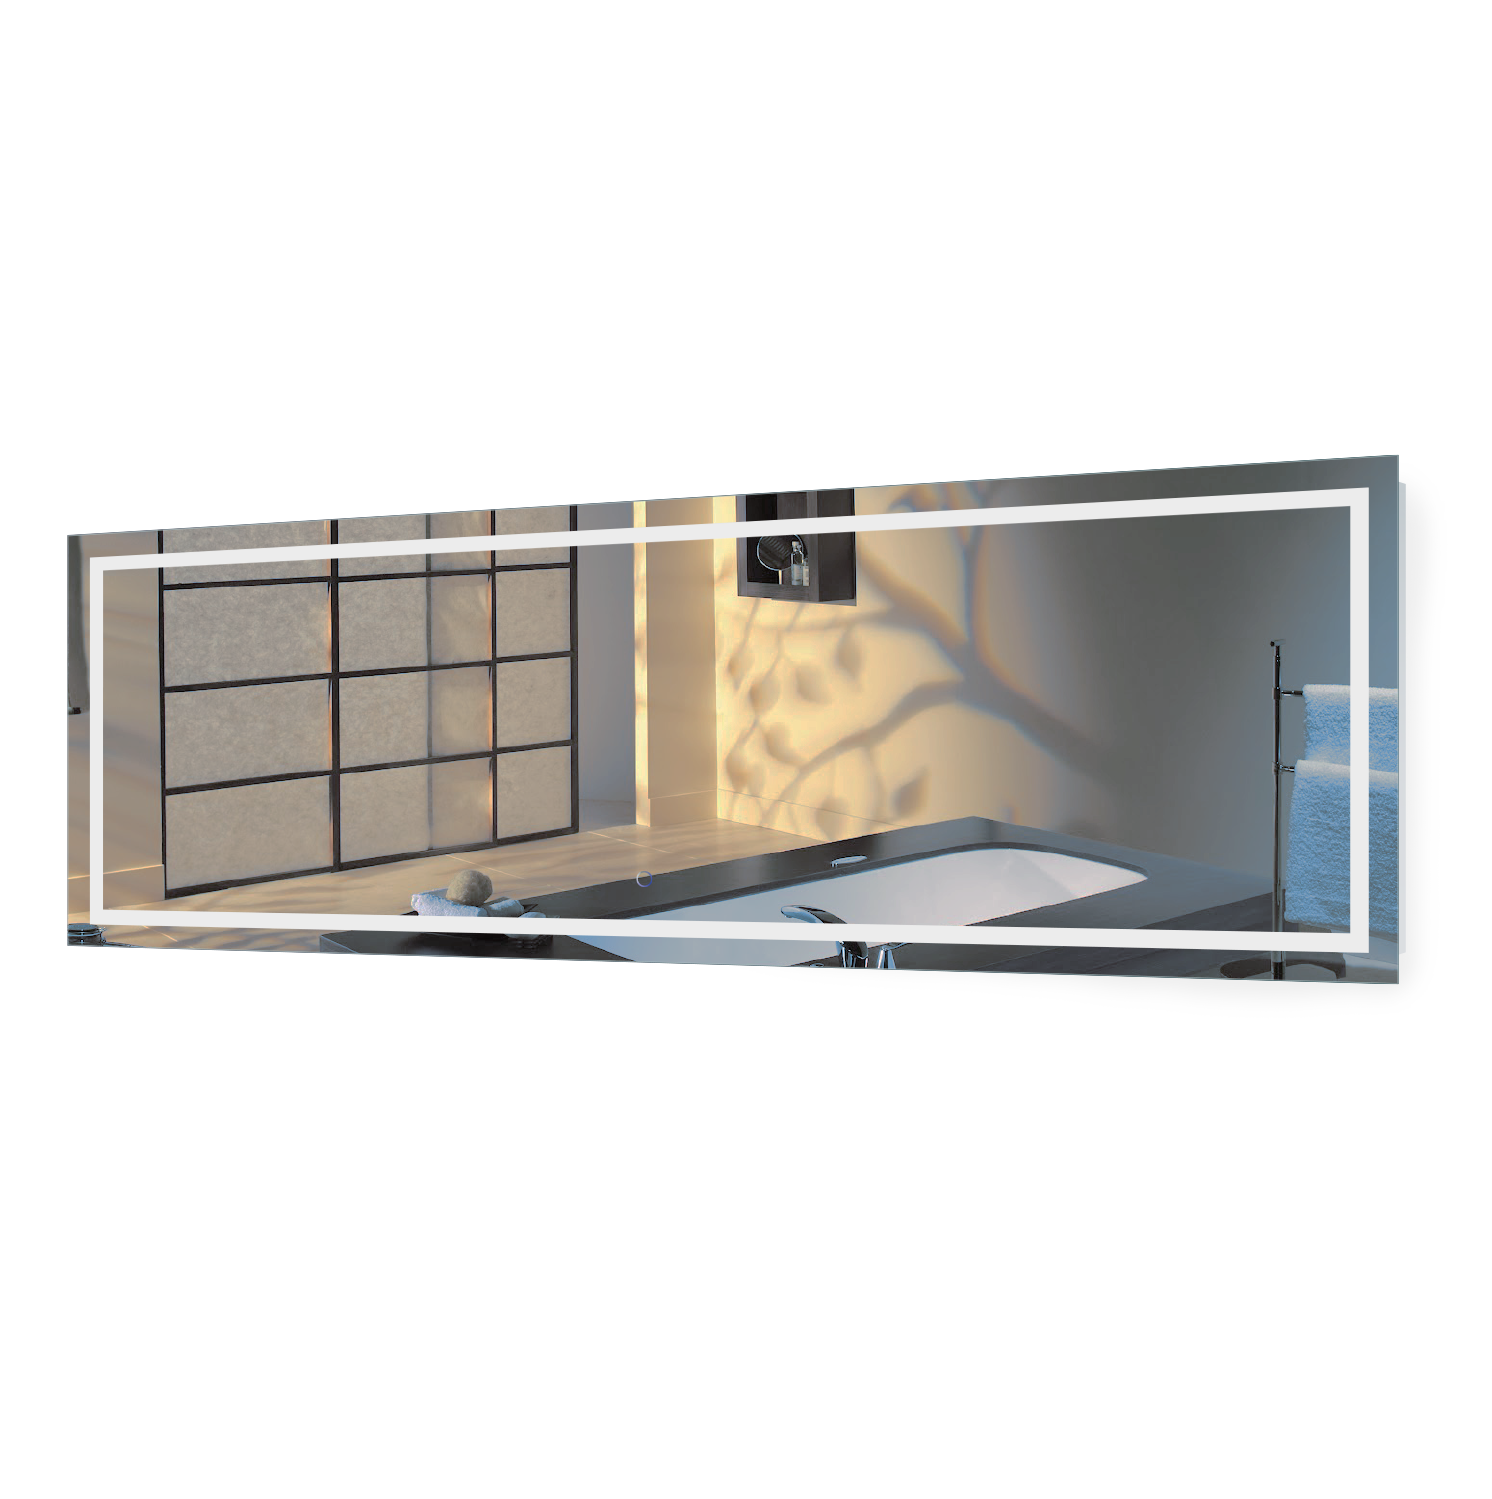 Lighted Bathroom Wall Mirror Large: Large 84 Inch X 30 Inch LED Bathroom Mirror